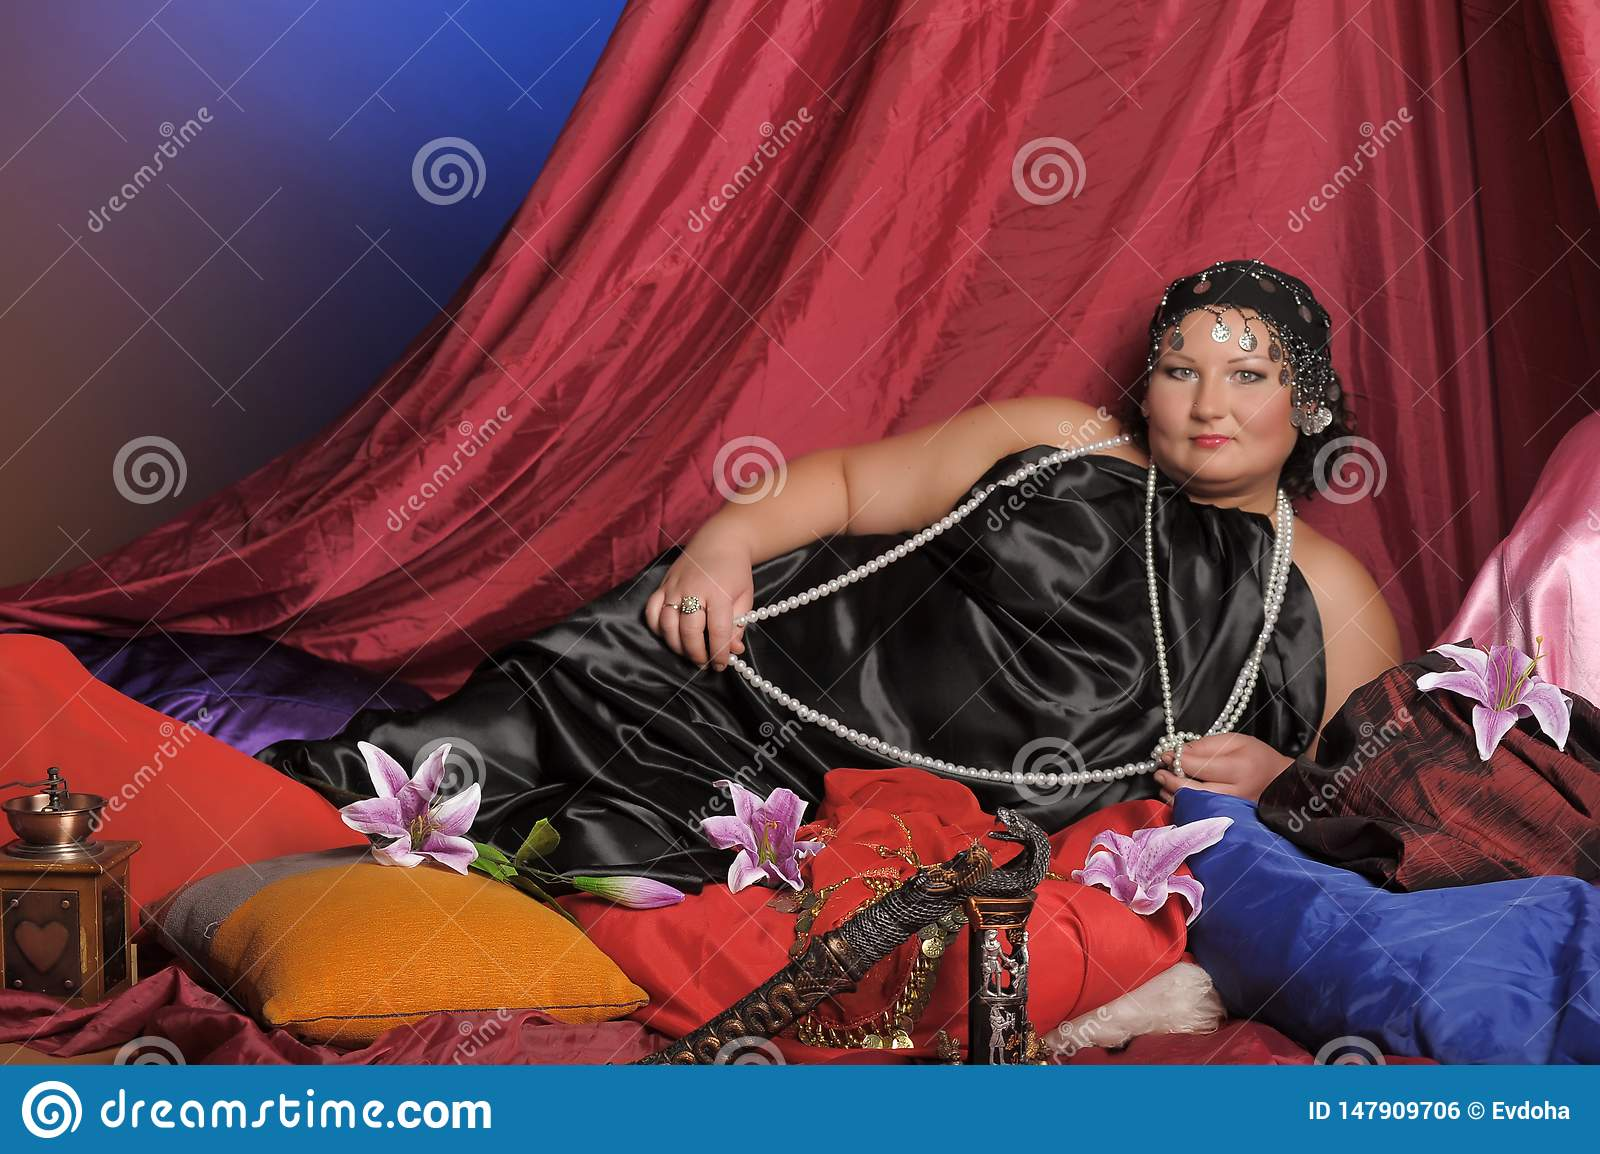 Eastern Guria, a well-fed woman in Oriental clothes lies